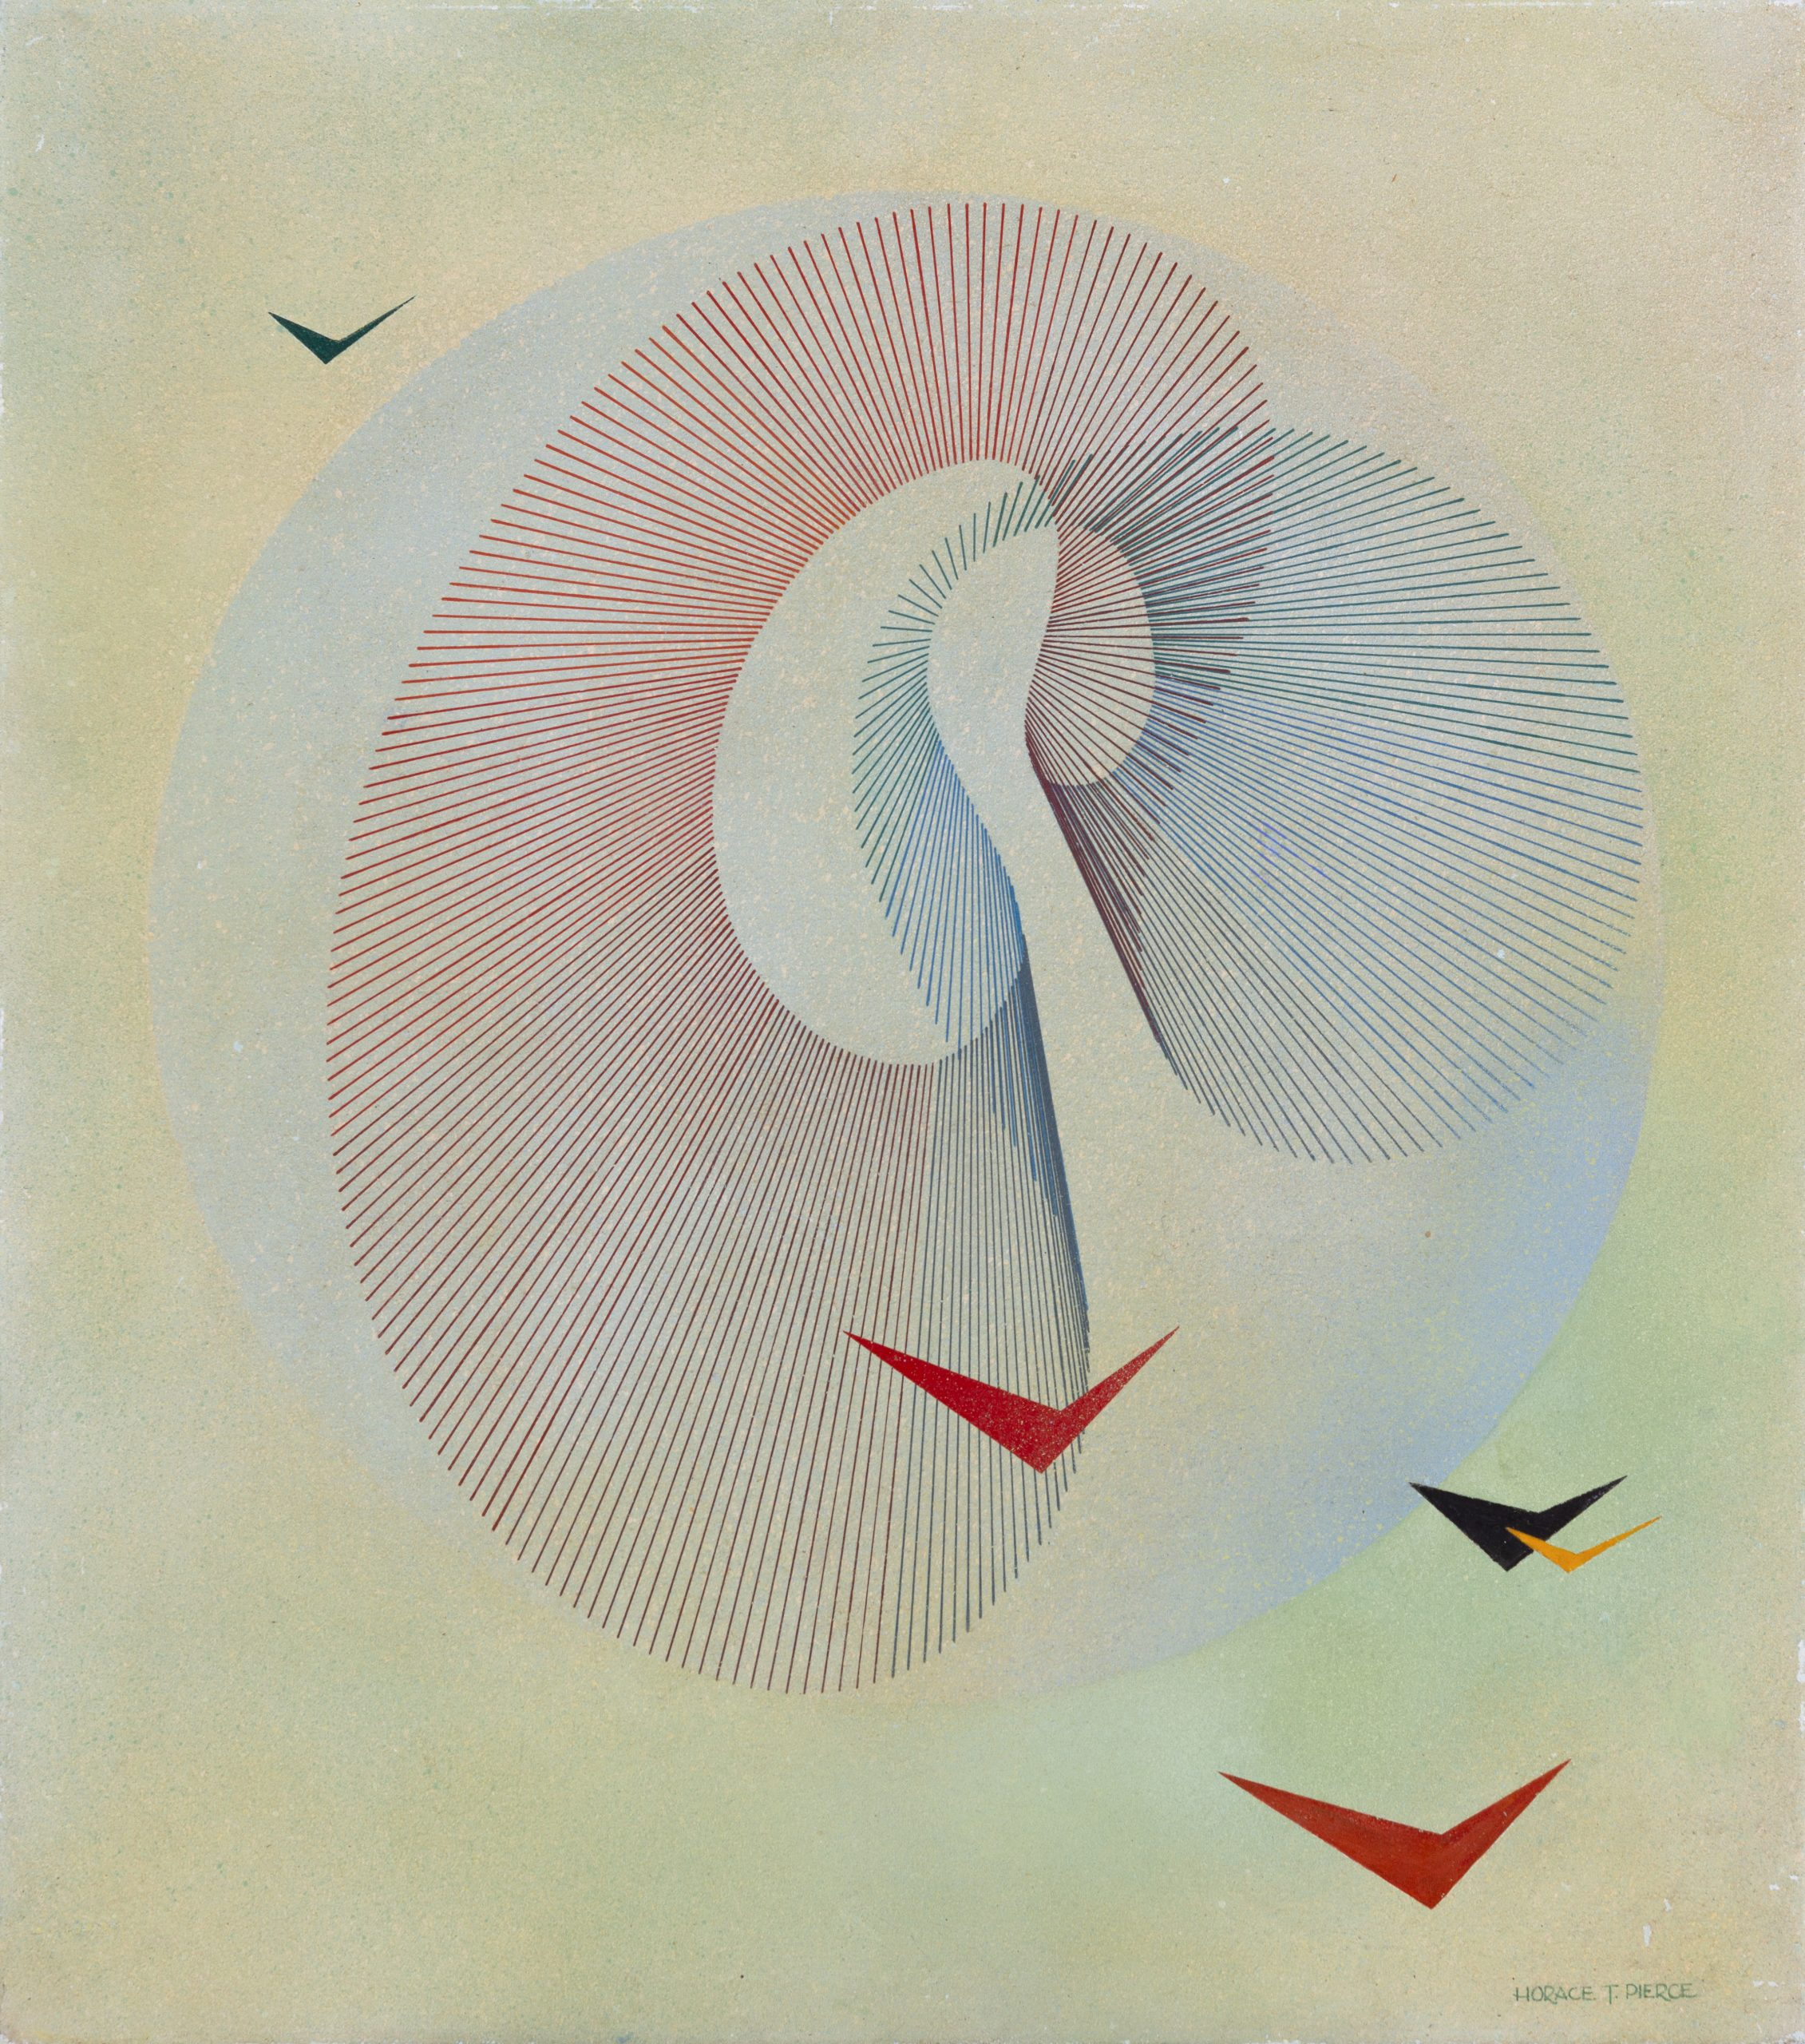 Horace Towner Pierce, Untitled, c. 1940 - 1955, Airbrushed paint on Masonite panel, Gift of Florence Miller Pierce to the Raymond Jonson Collection